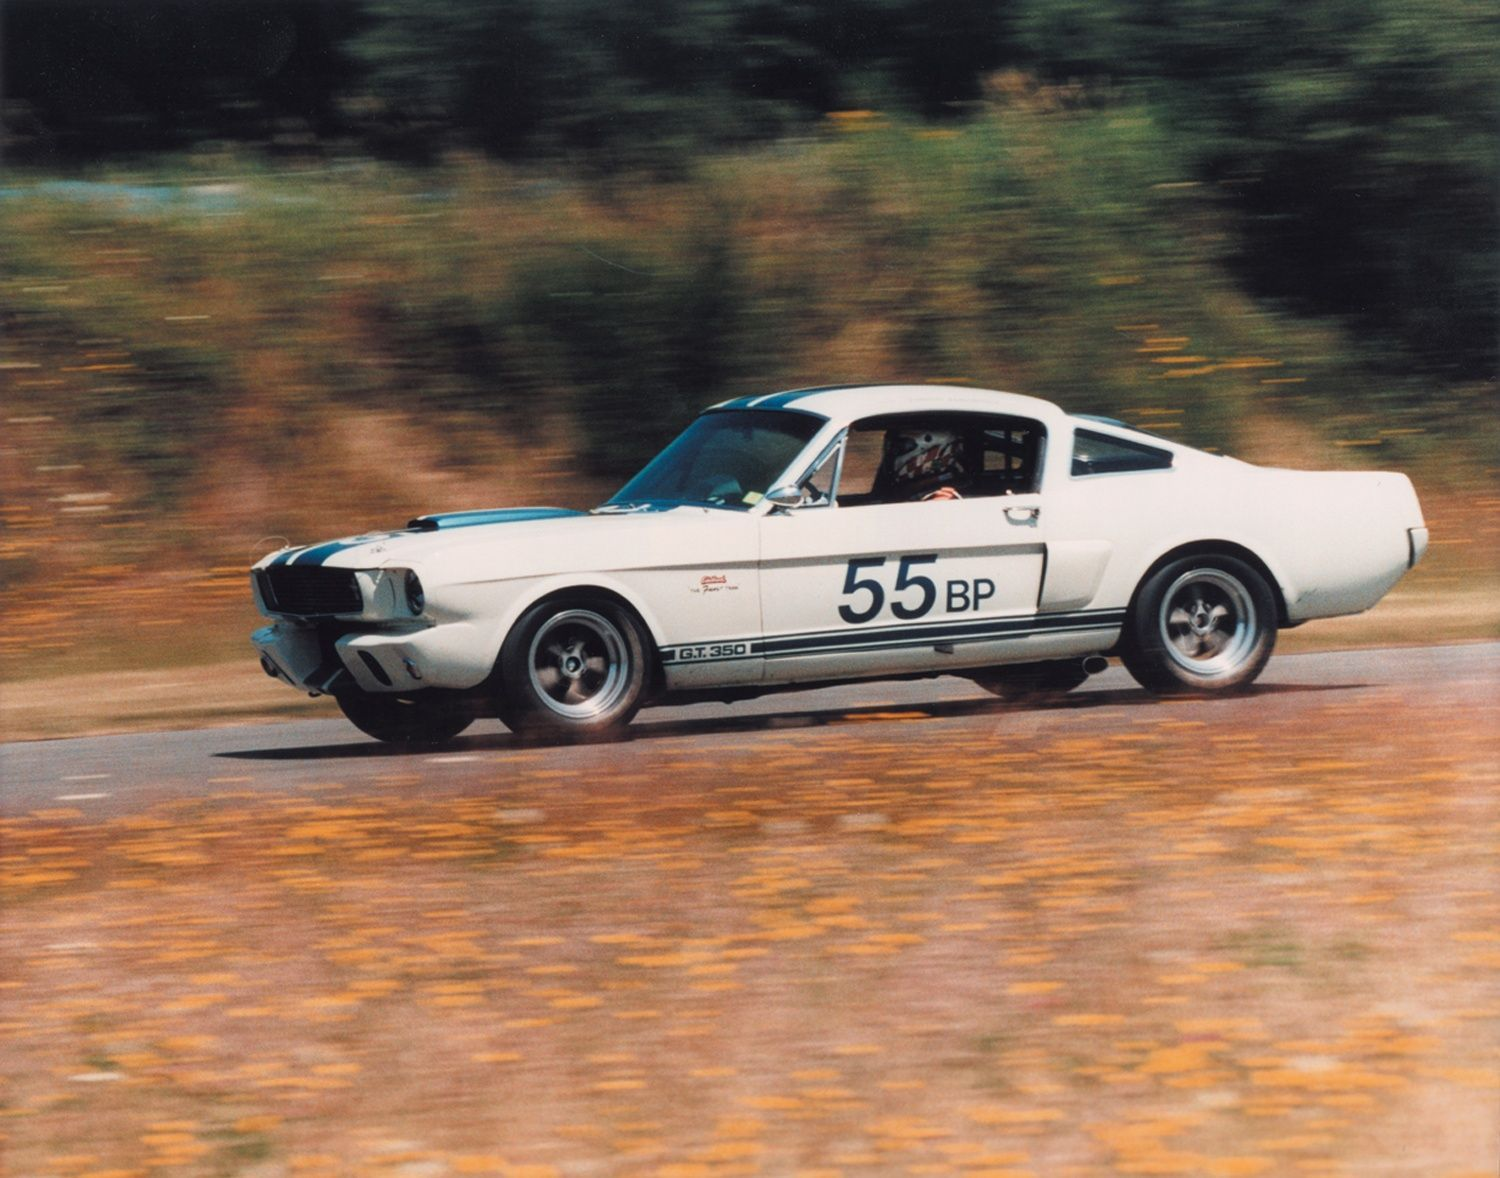 25 Ford Mustang   '65 Mustang Fastback #55